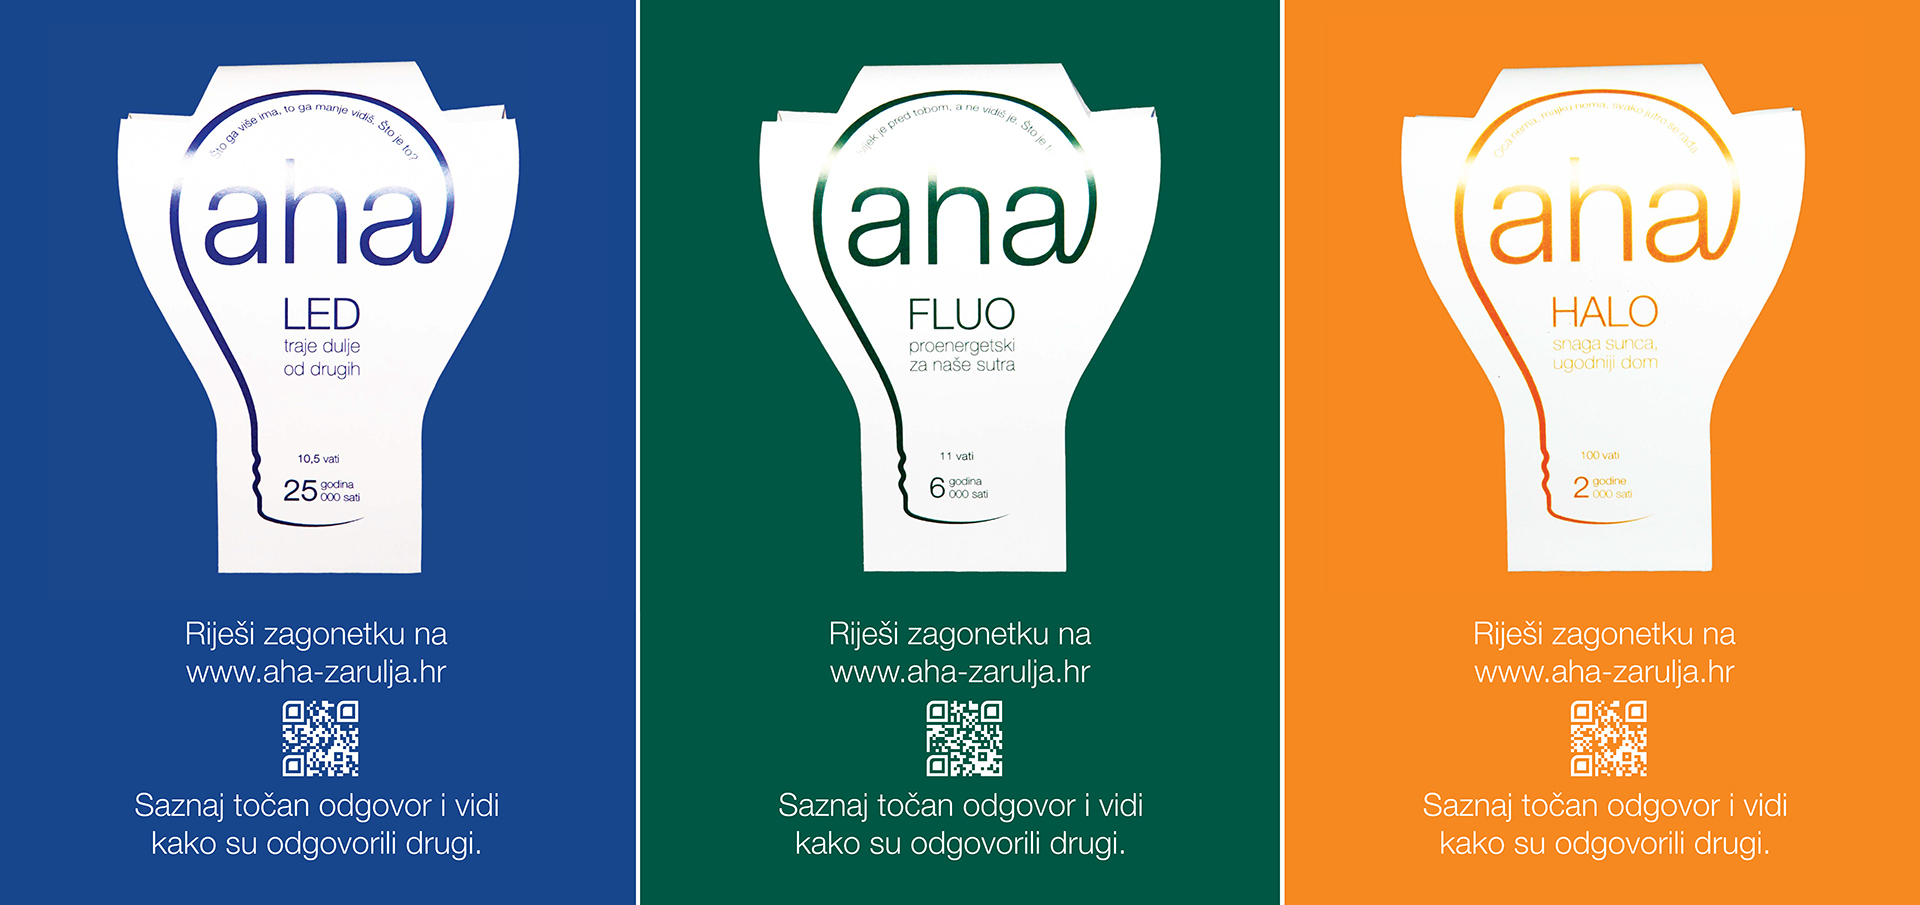 Aha light bulb packaging posters